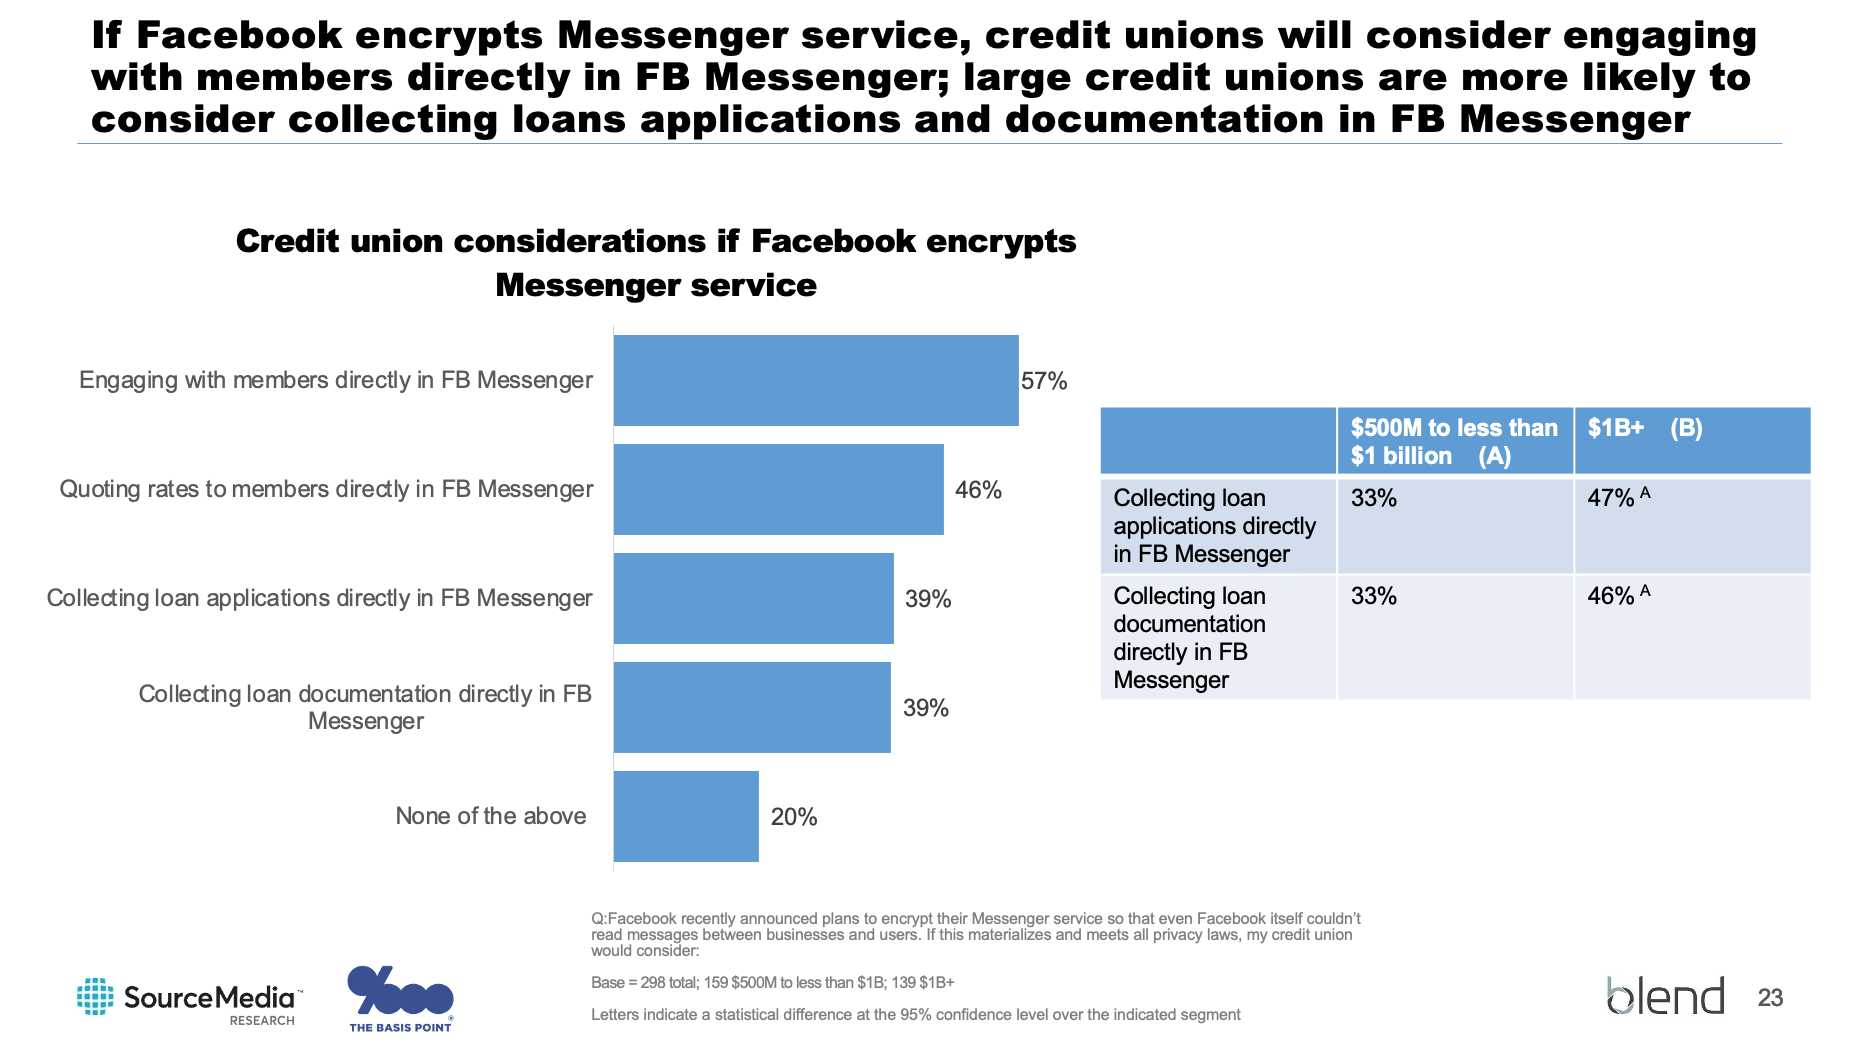 Most banks plan to engage, take loan apps, quote rates, collect docs on a fully-private Facebook - The Basis Point